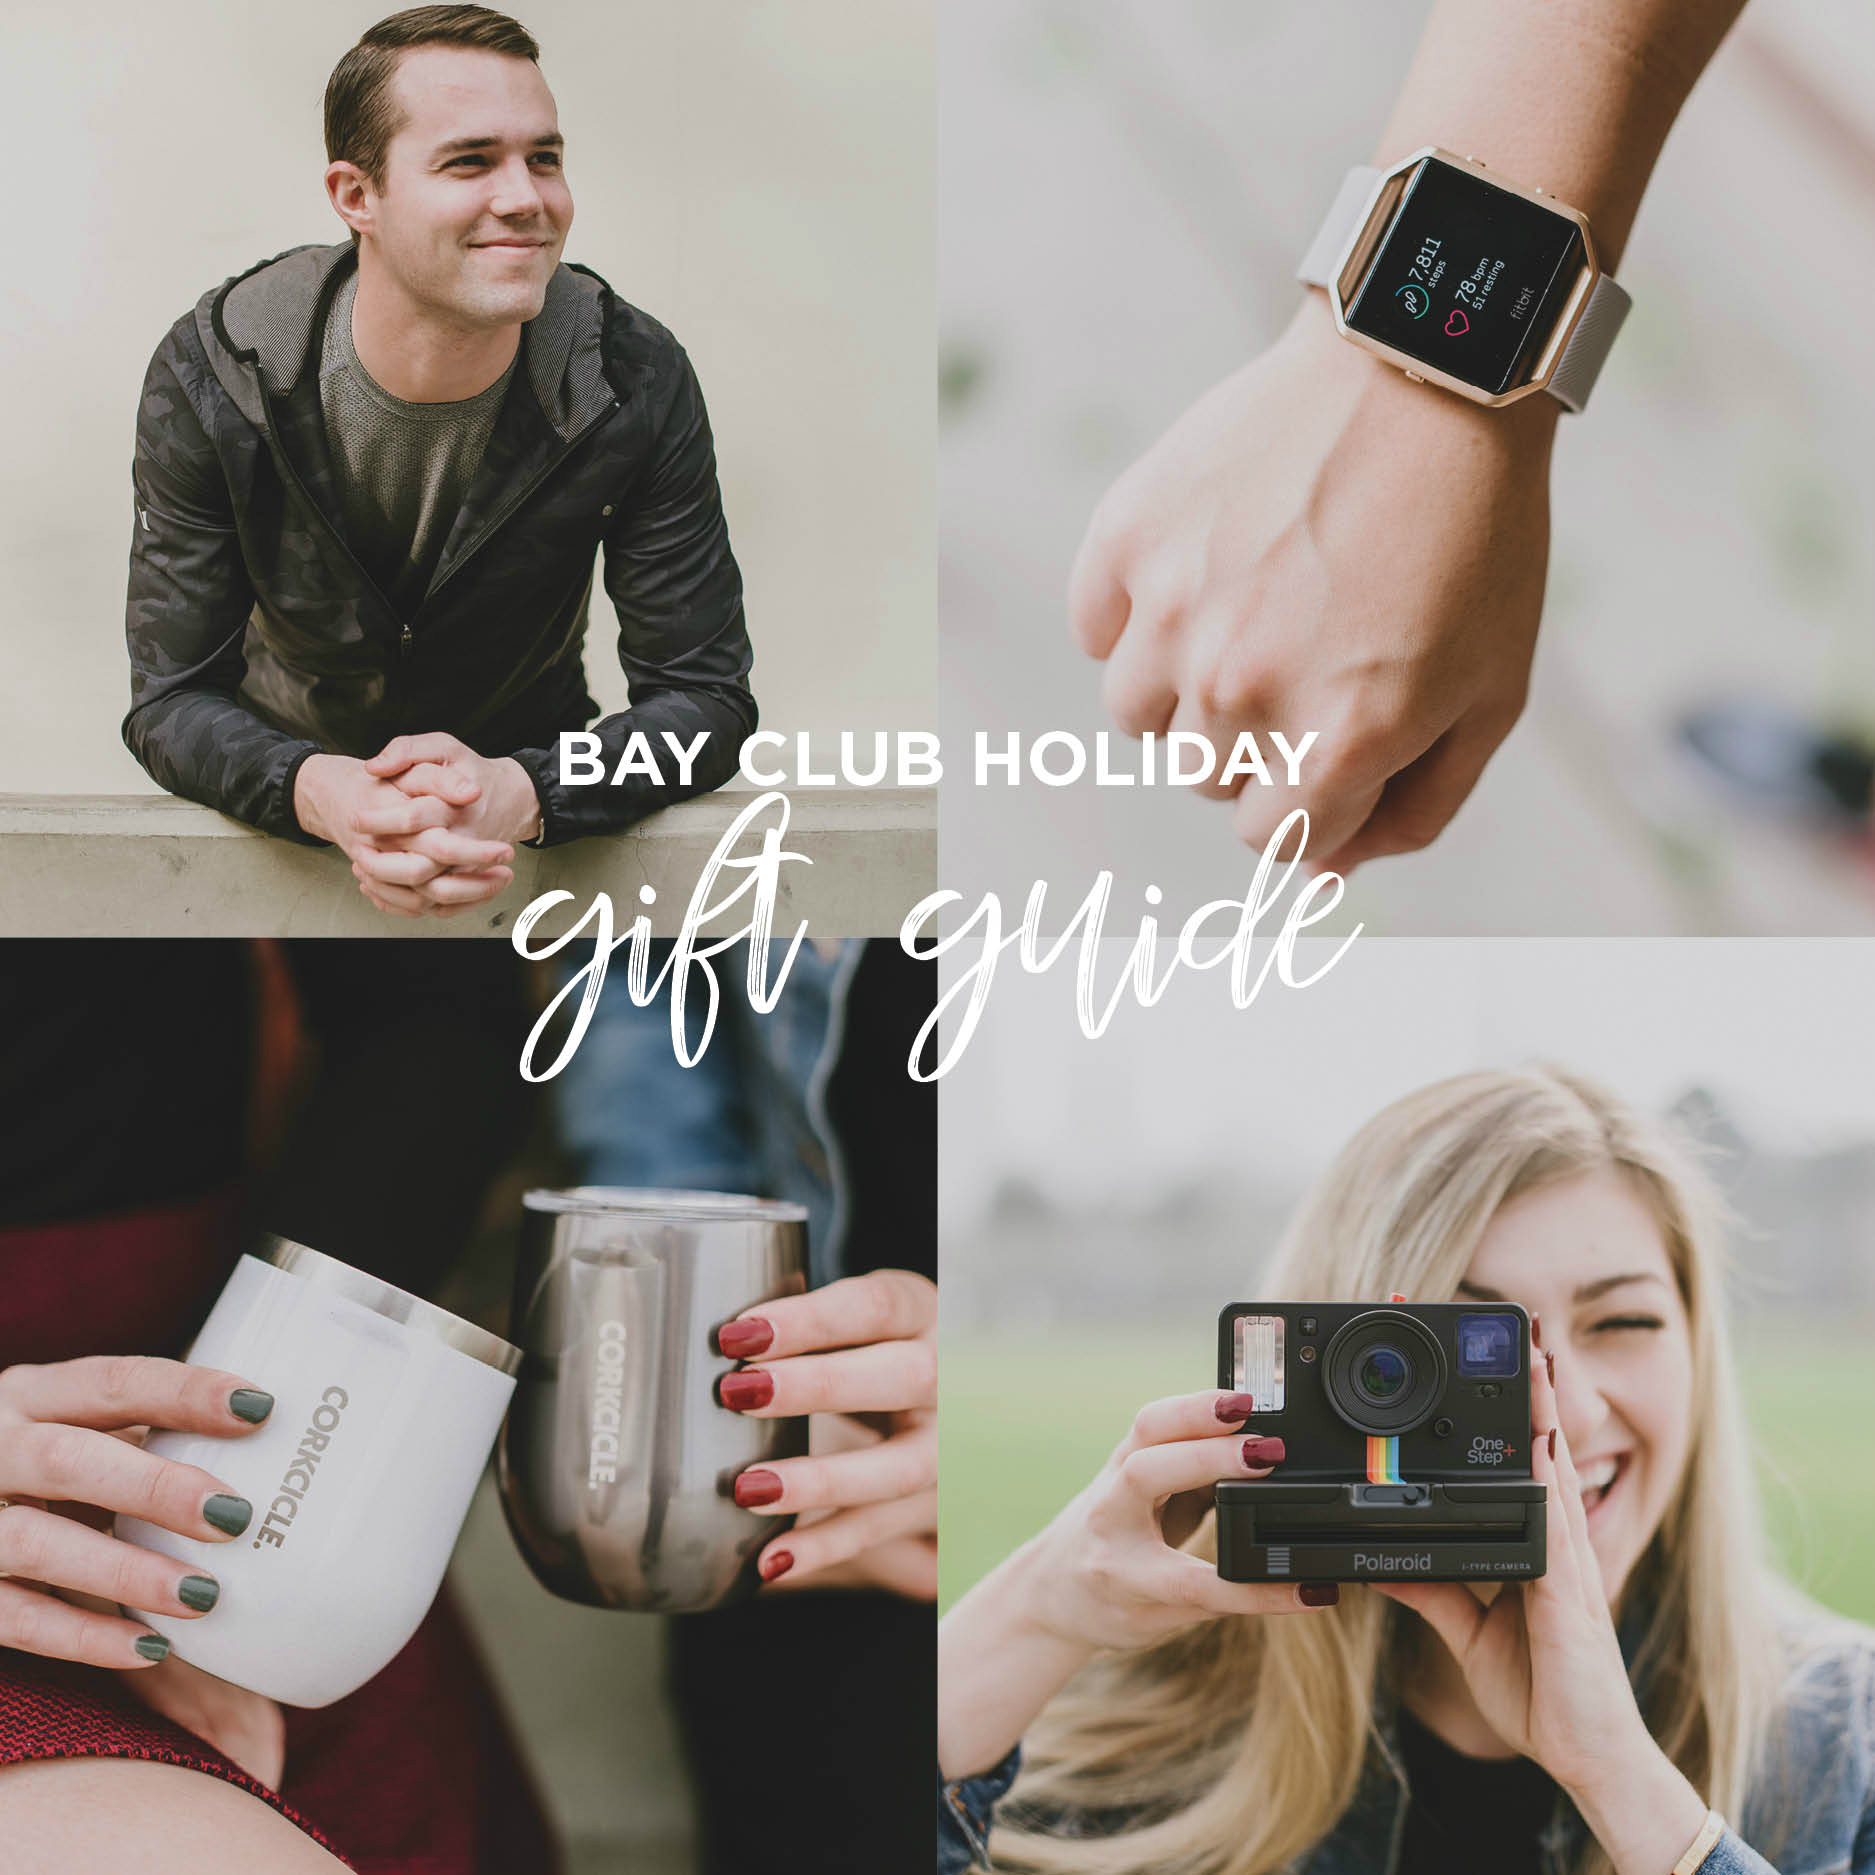 Bay Club's Gift Guide for the Holidays